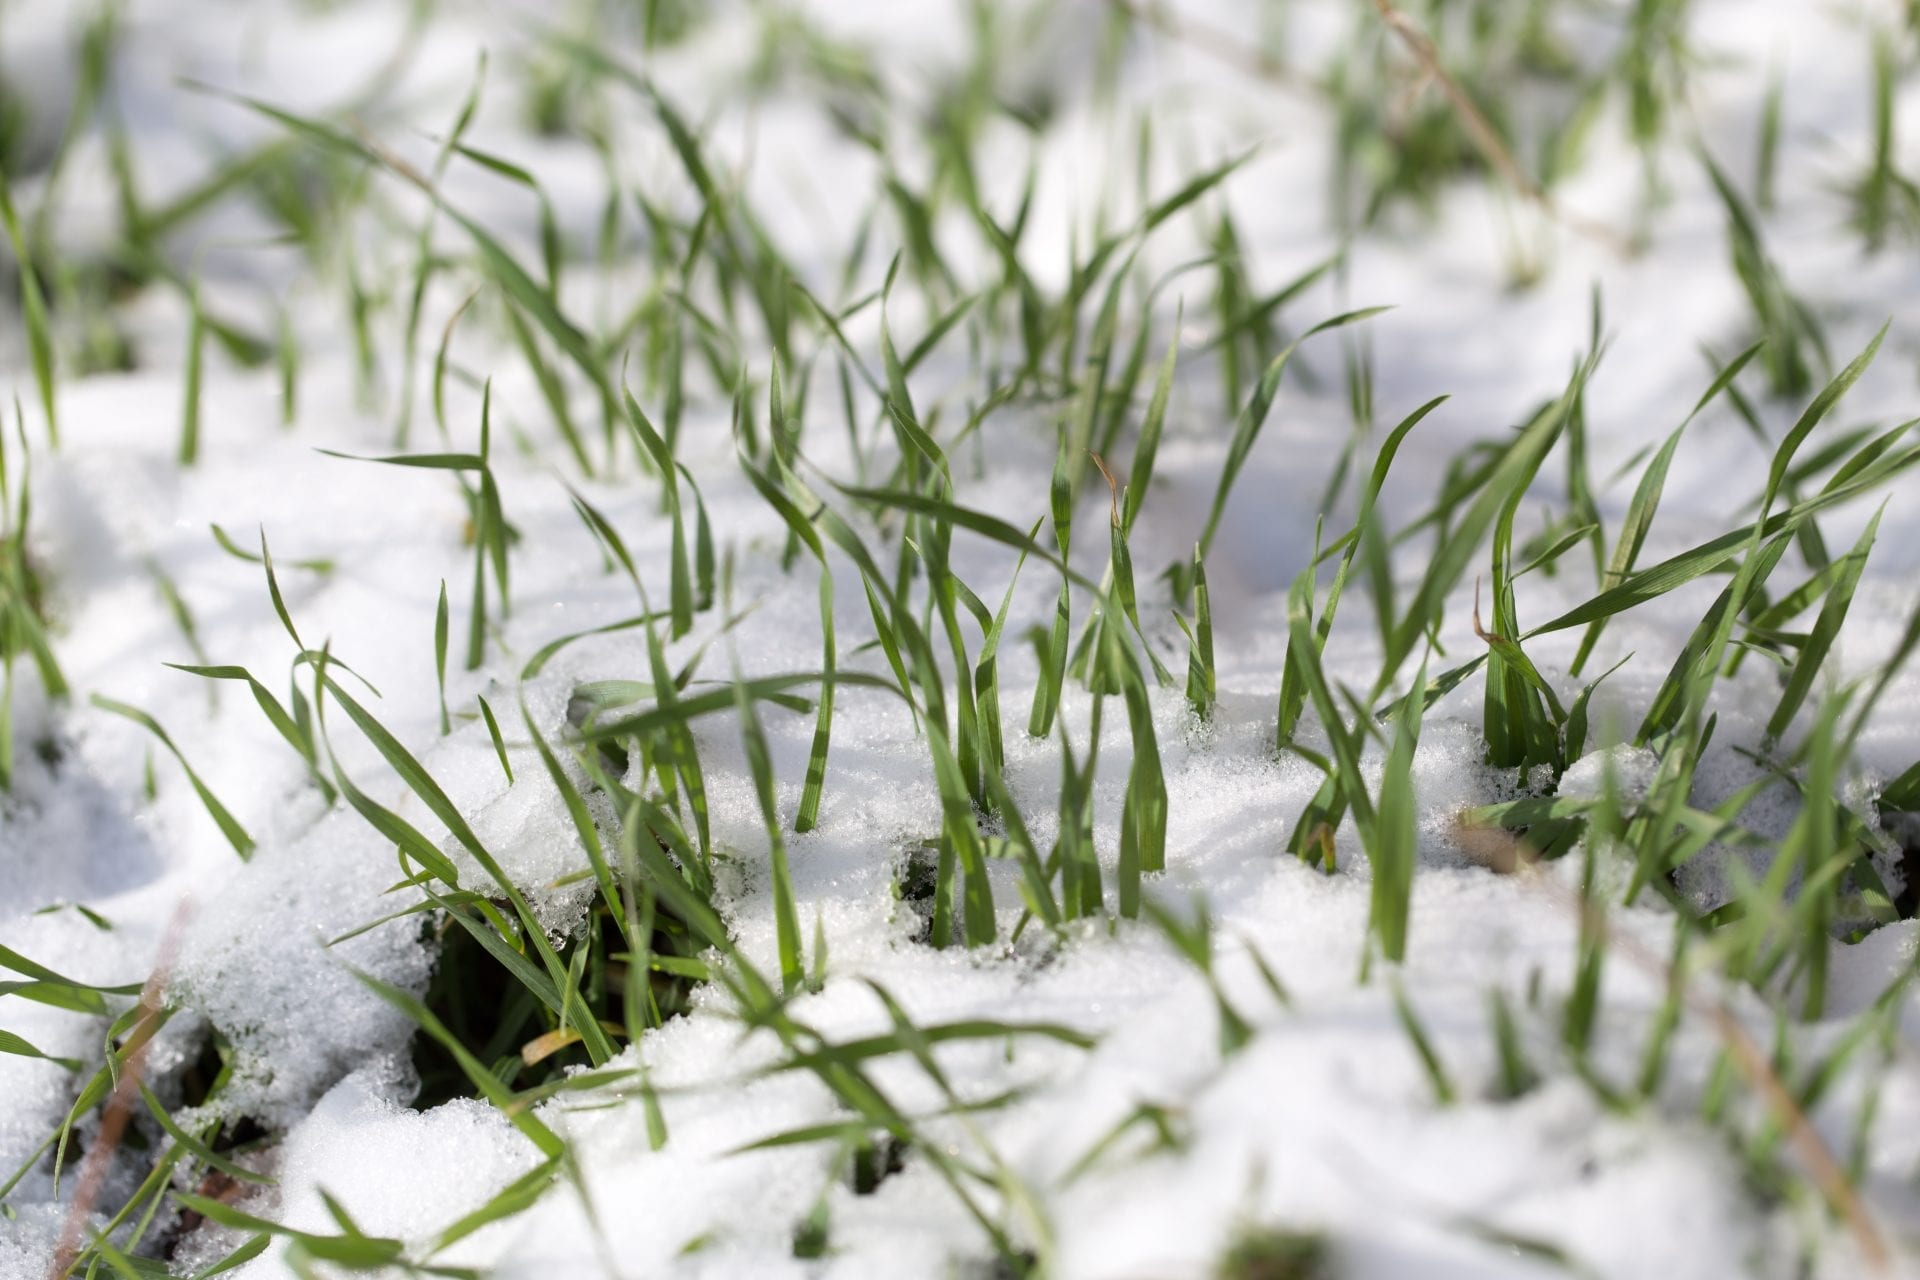 Lawn Care Tips For A Better Lawn | Blog | Front Range Arborists